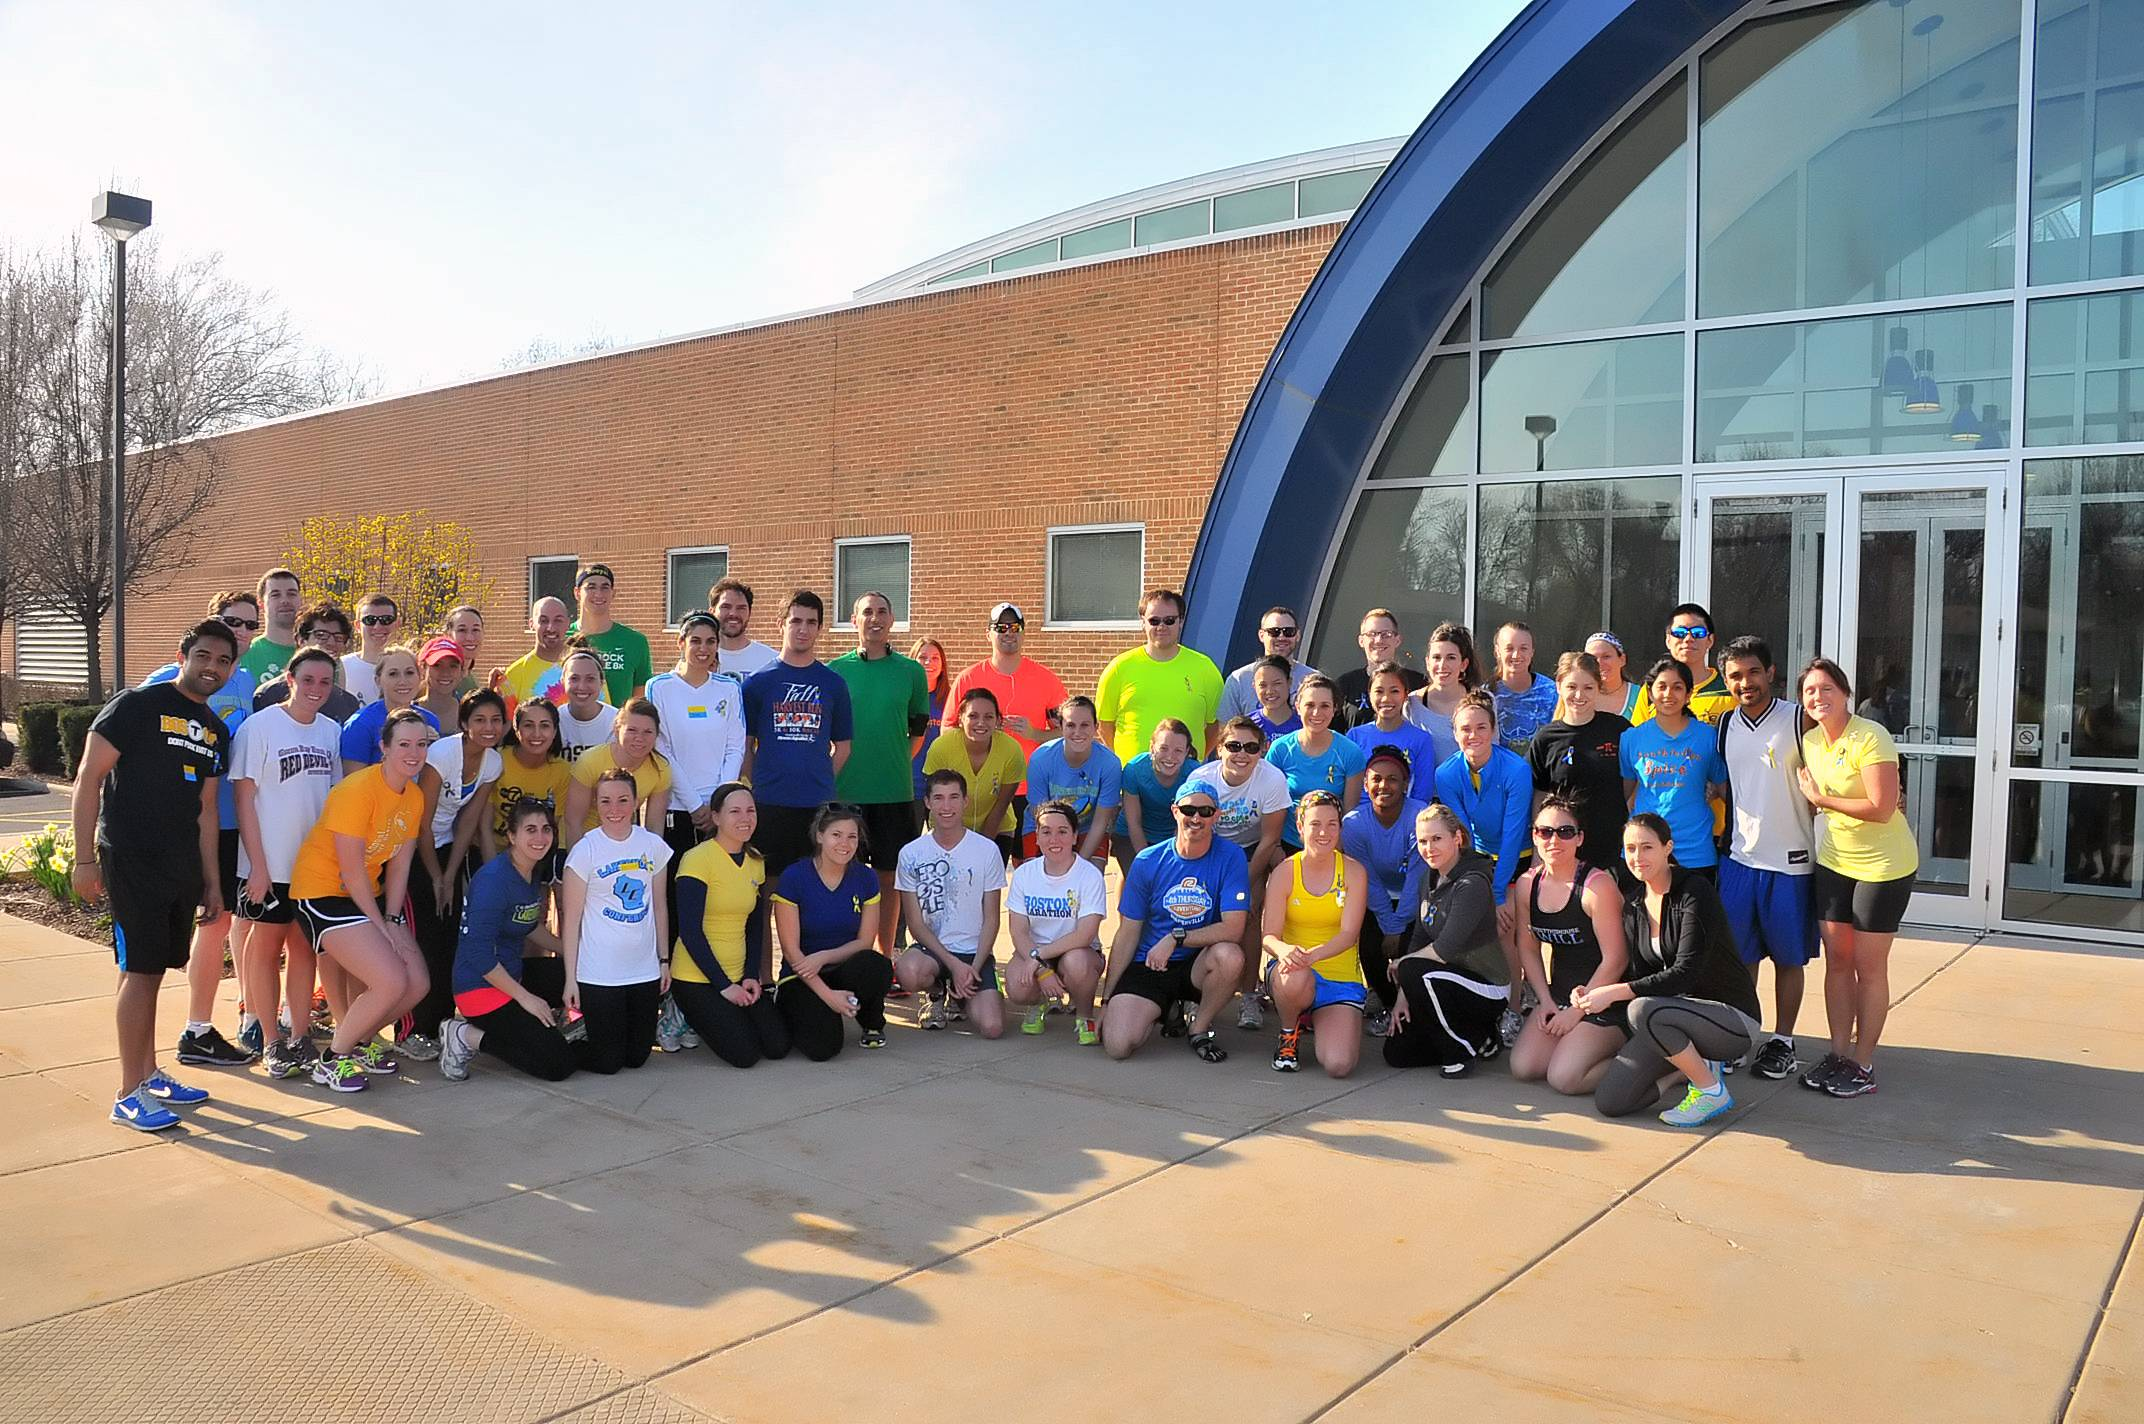 Midwestern University students and faculty members gather before a run organized in honor of the Boston Marathon tragedy. The run was coordinated by a Midwestern student who participated in the marathon.